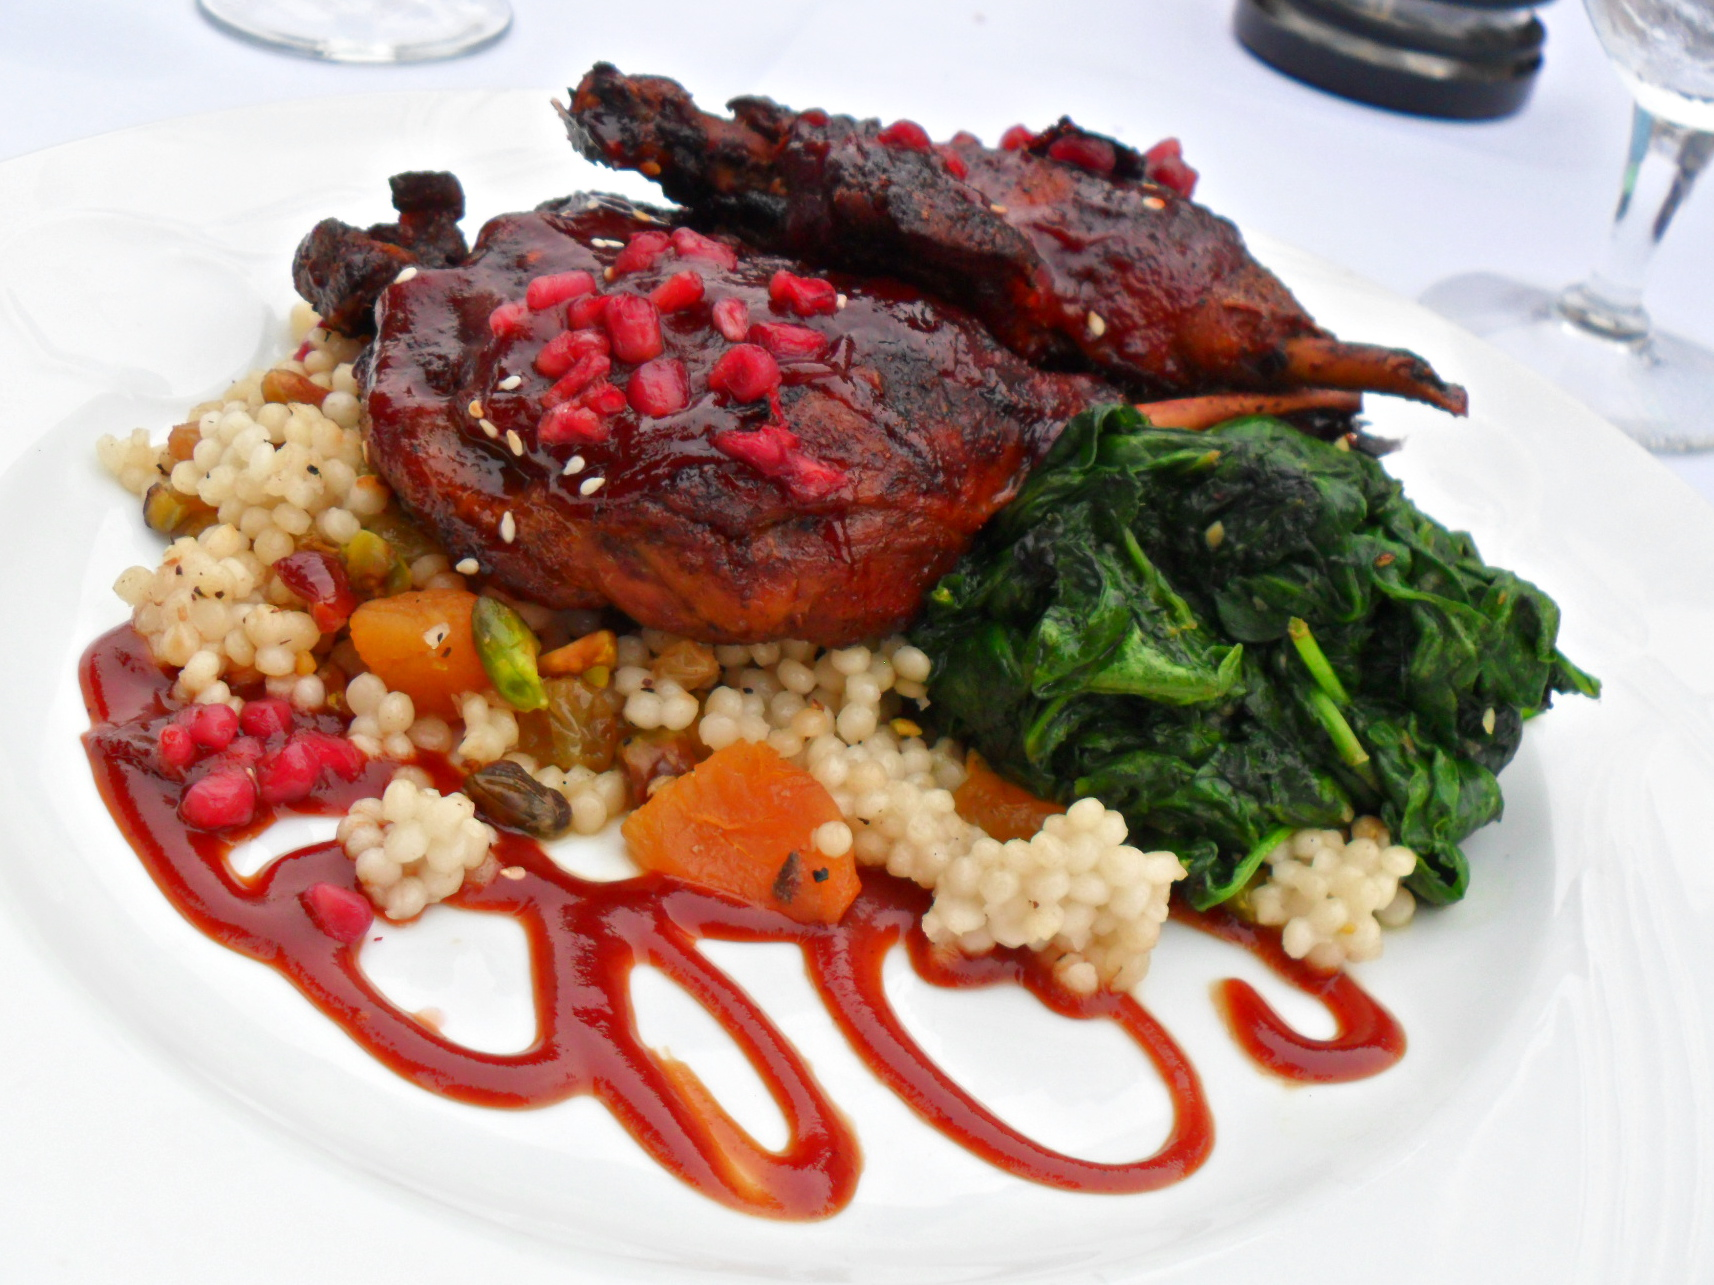 ... and pistachio couscous, spinach, and a pomegranate barbeque sauce